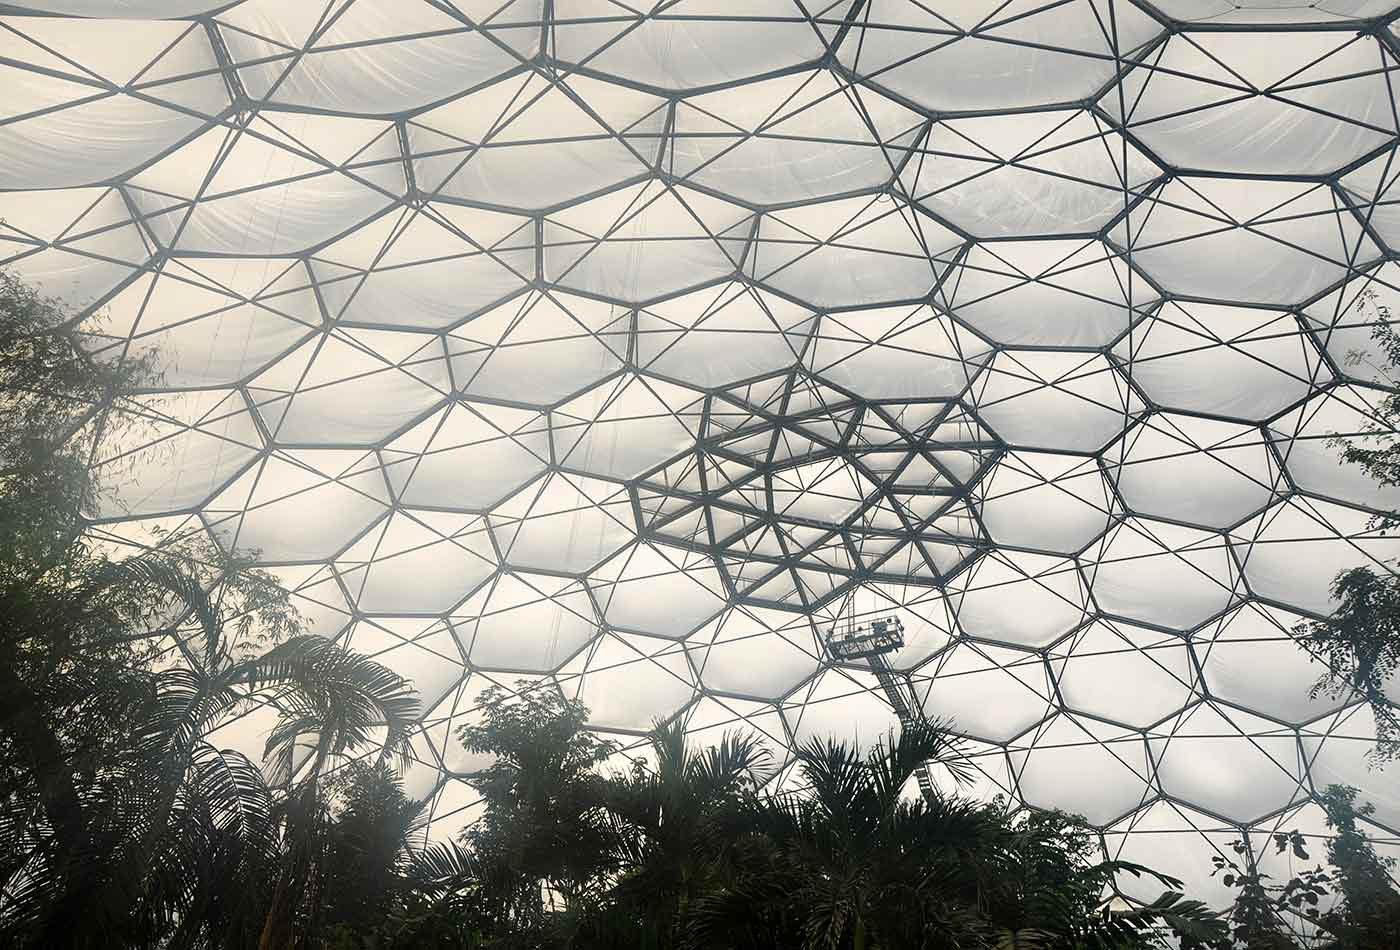 The interior of the tropical biome at the Eden Project